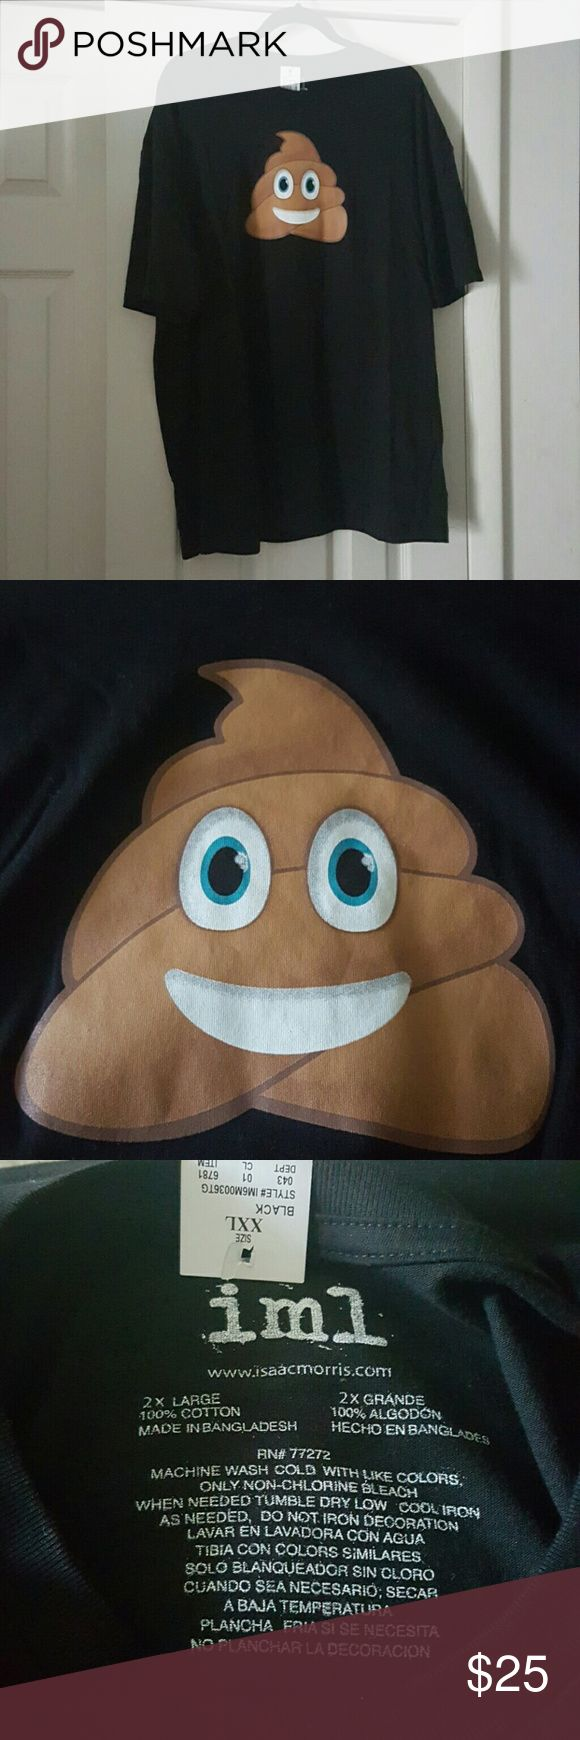 🎈SALE Poop/ Chocolate Ice Cream Emoji Tee Brand new, never worn  Super cute Technically a men's tee but can be worn by anyone Solid black with short sleeves and emoji image on front  NO TRADES   BUNDLE TO SAVE MORE iml Shirts Tees - Short Sleeve